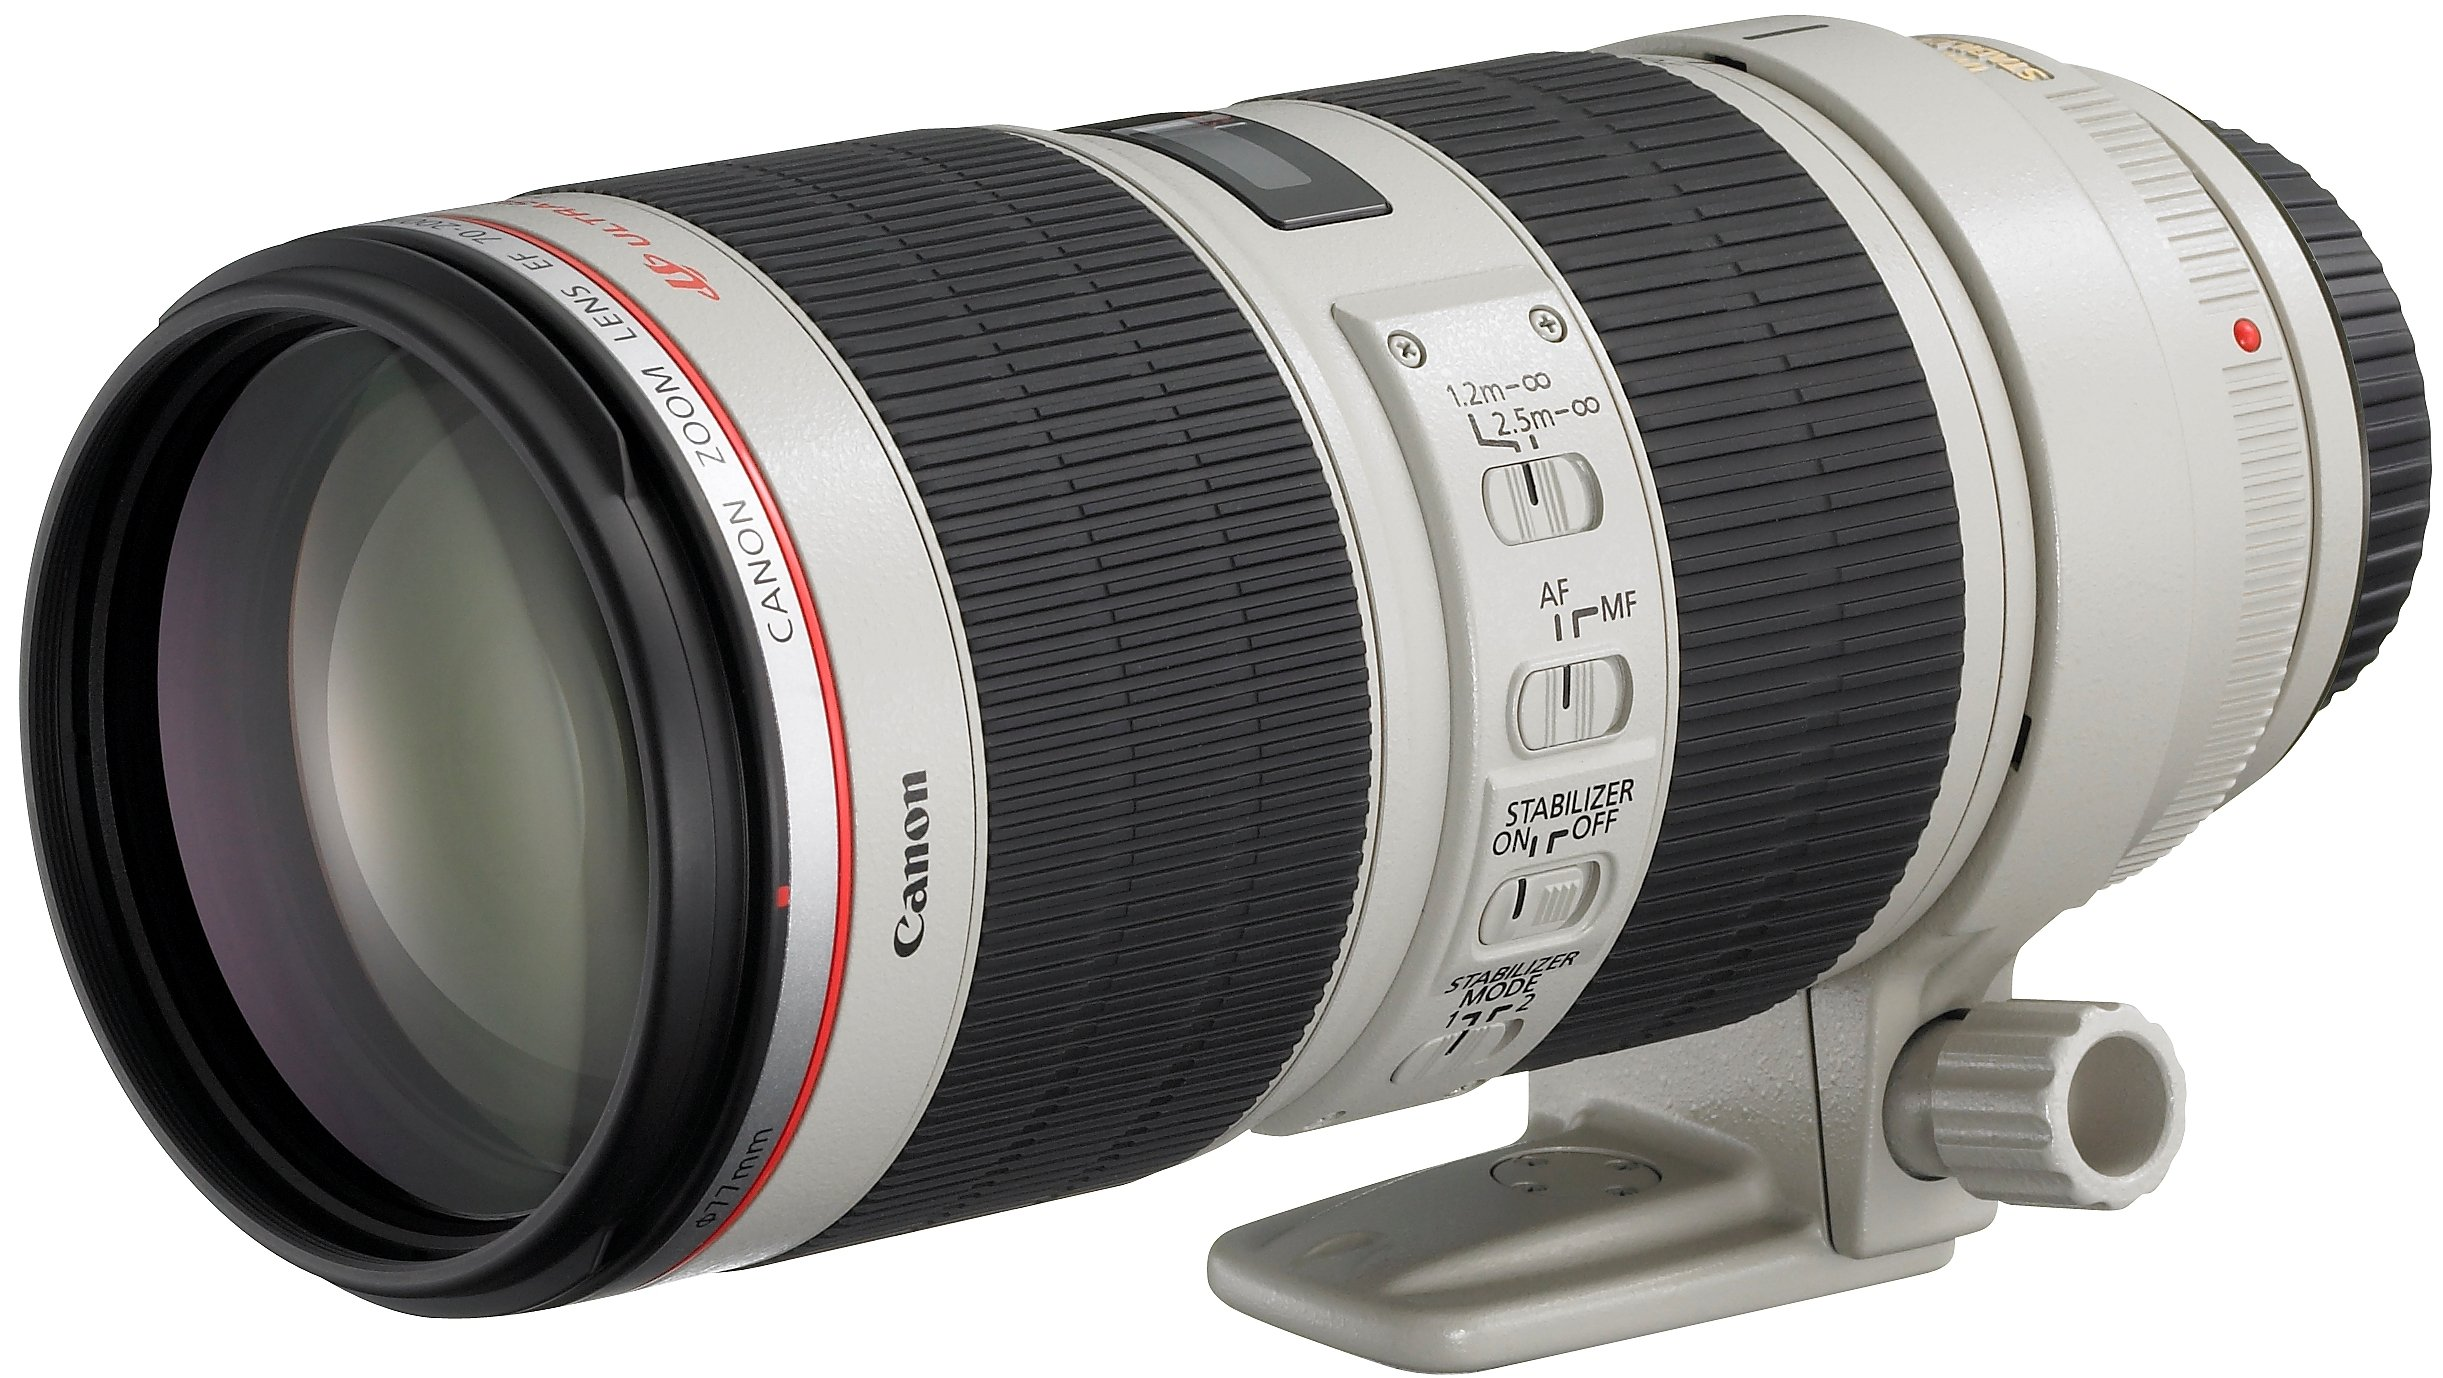 Canon EF 70-200 mm F/2.8 L IS II USM Lens product image